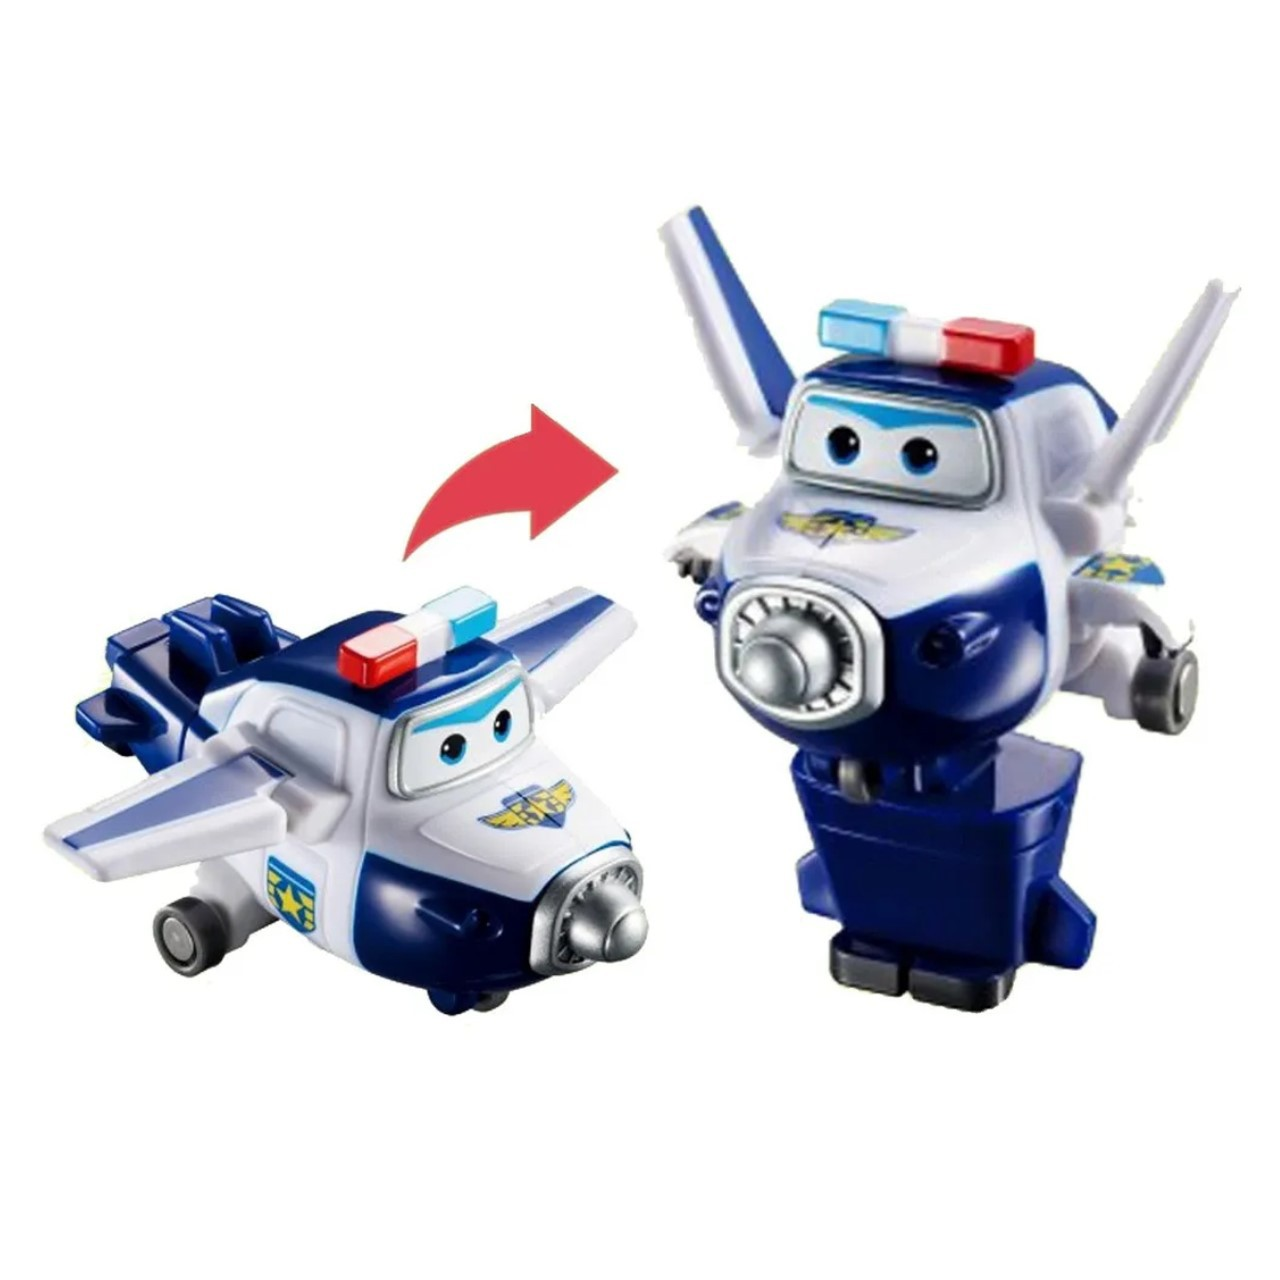 Super Wings Paul - Mini Boneco Transformável 6cm - Fun